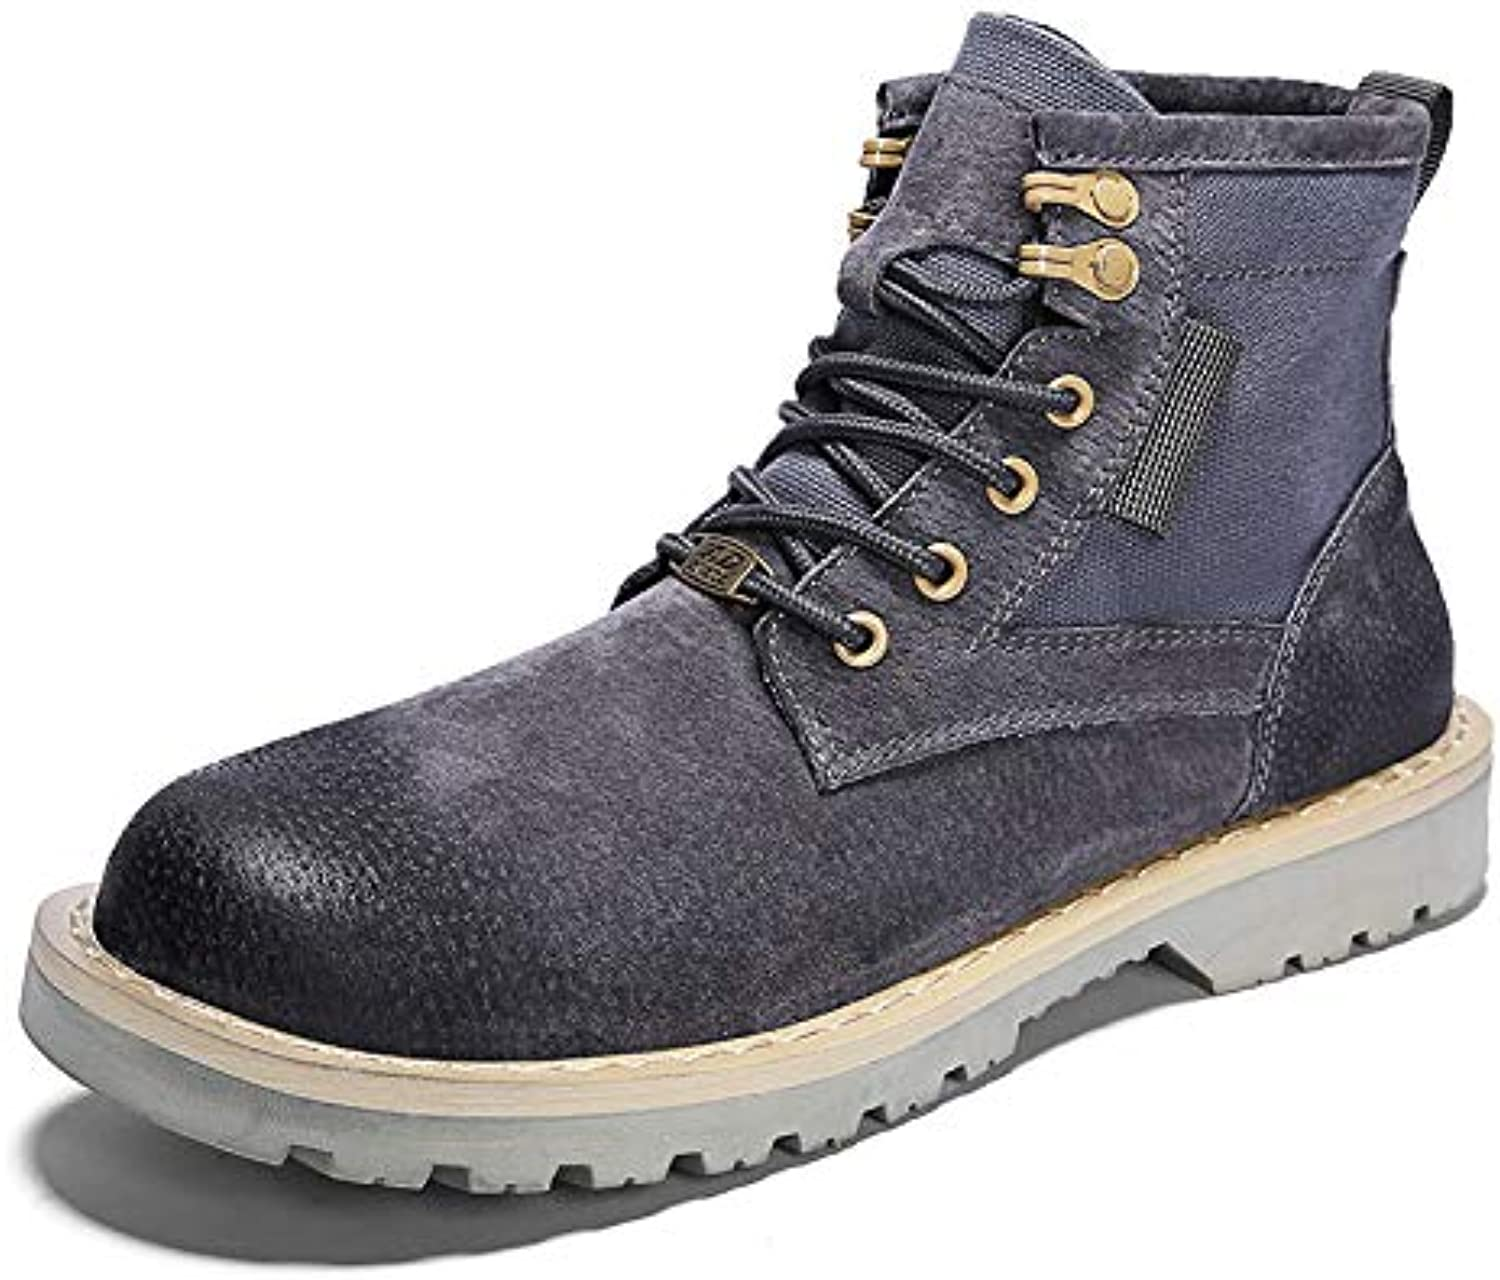 LOVDRAM Men'S shoes Autumn And Winter Help Martin Boots Men'S Winter shoes Fashion Men'S Leather Boots Fashion shoes